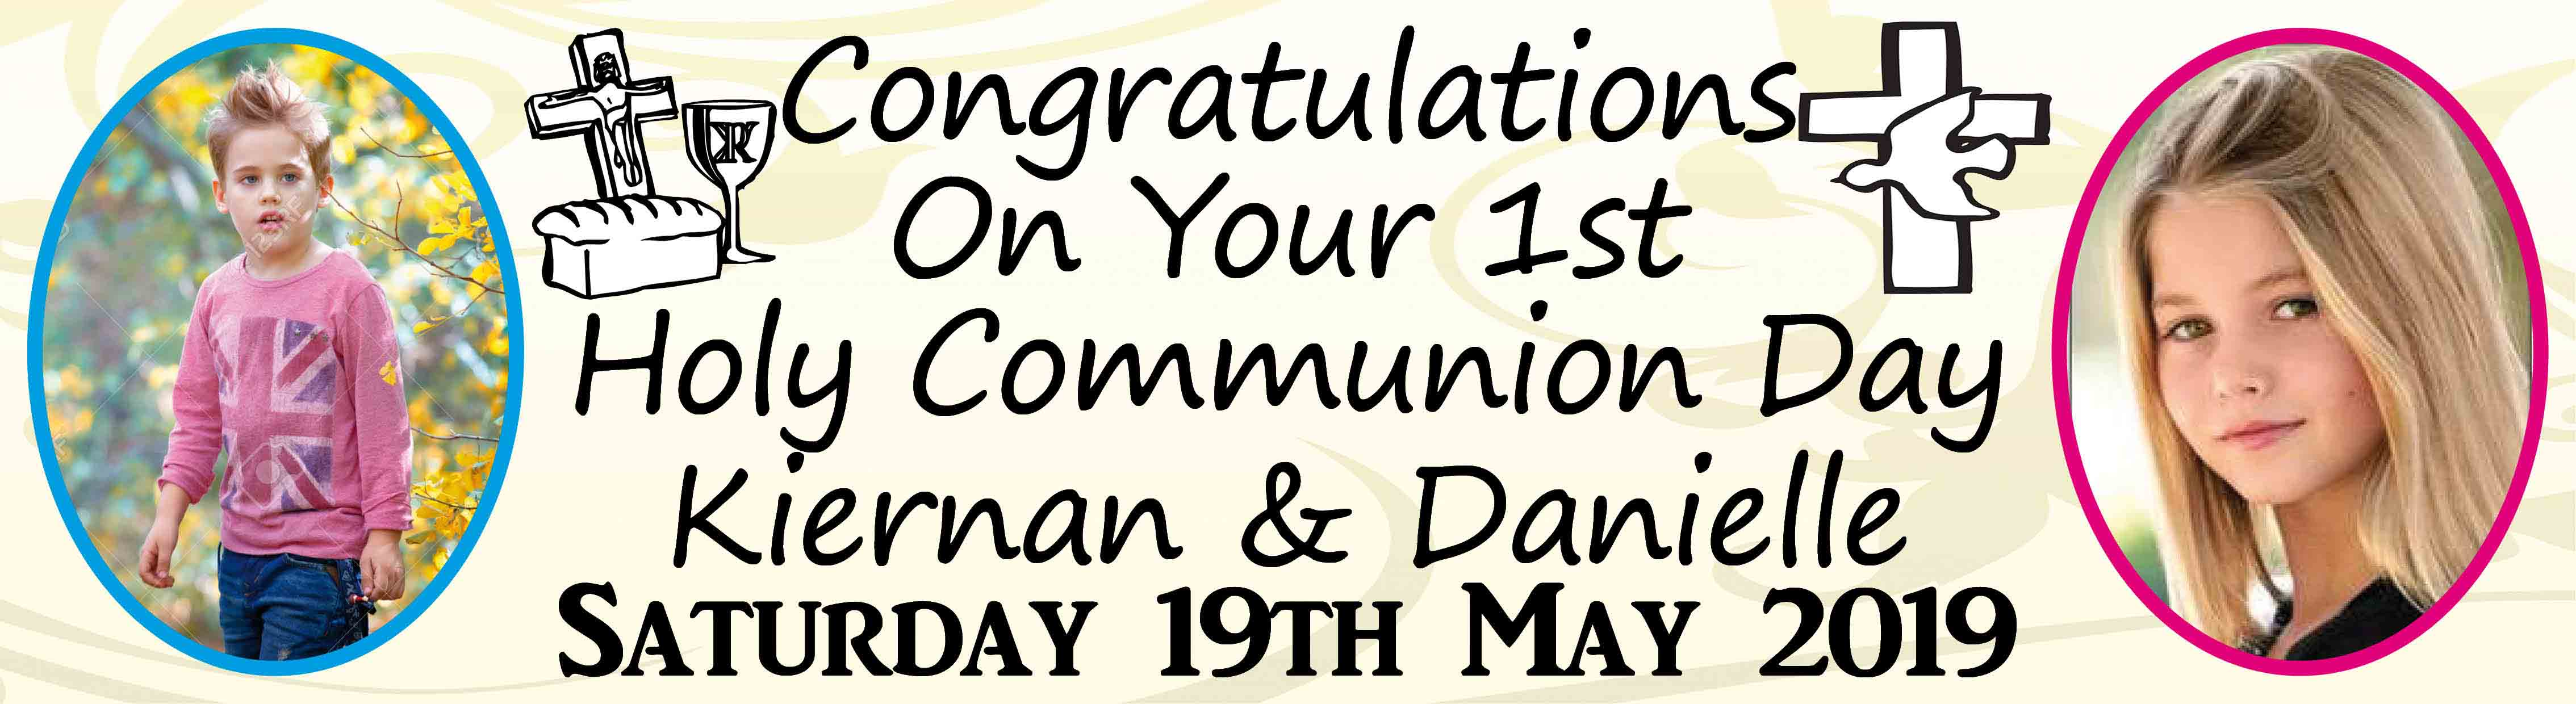 First Holy Communion Day Banner 5